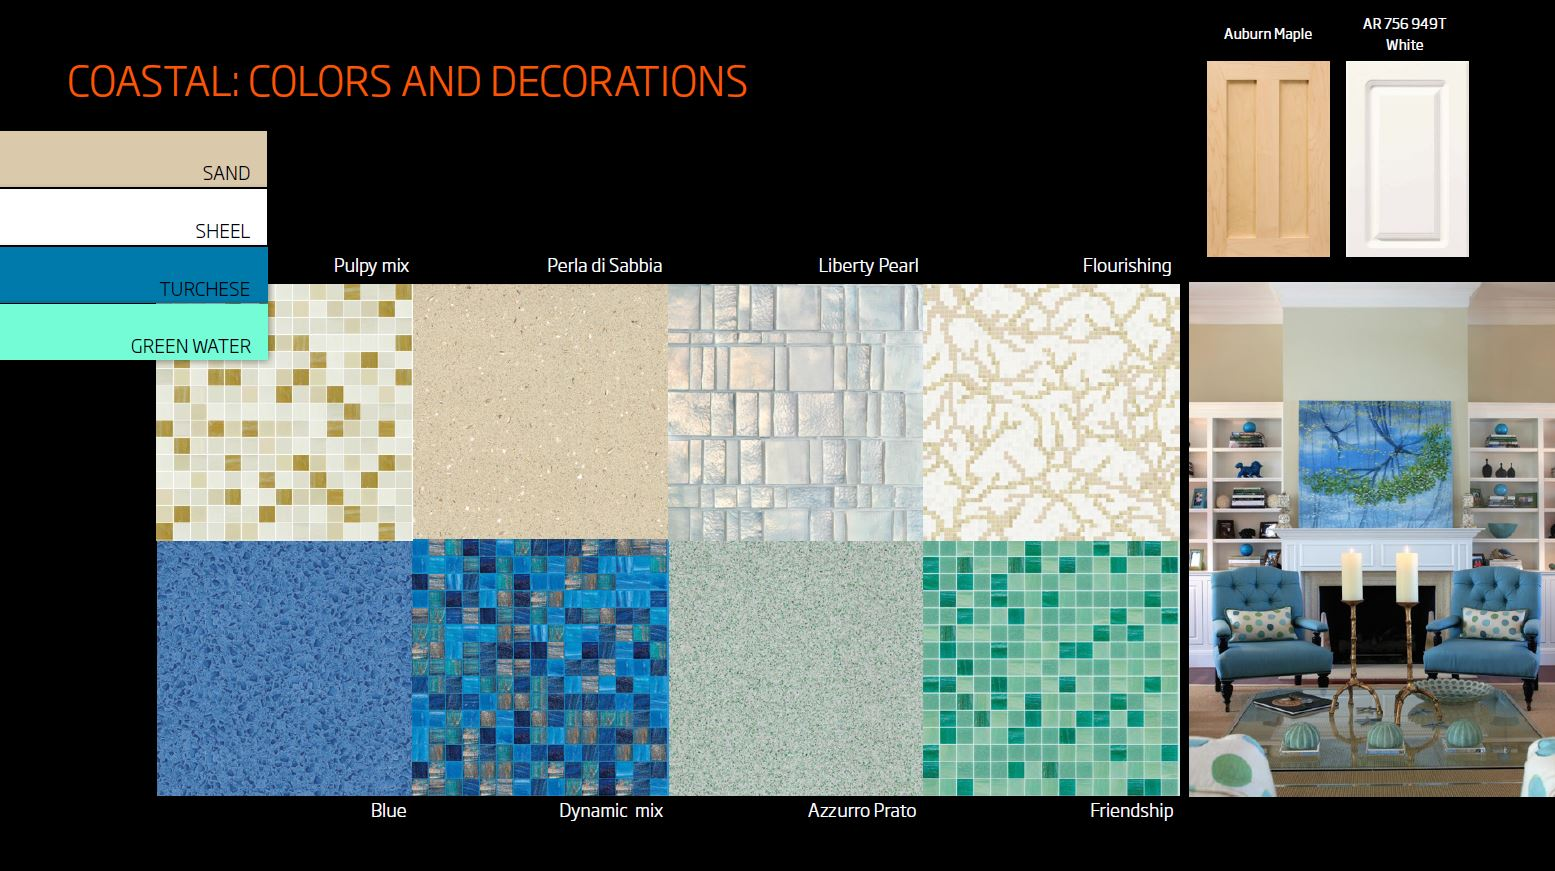 Coastal design colors and decorations